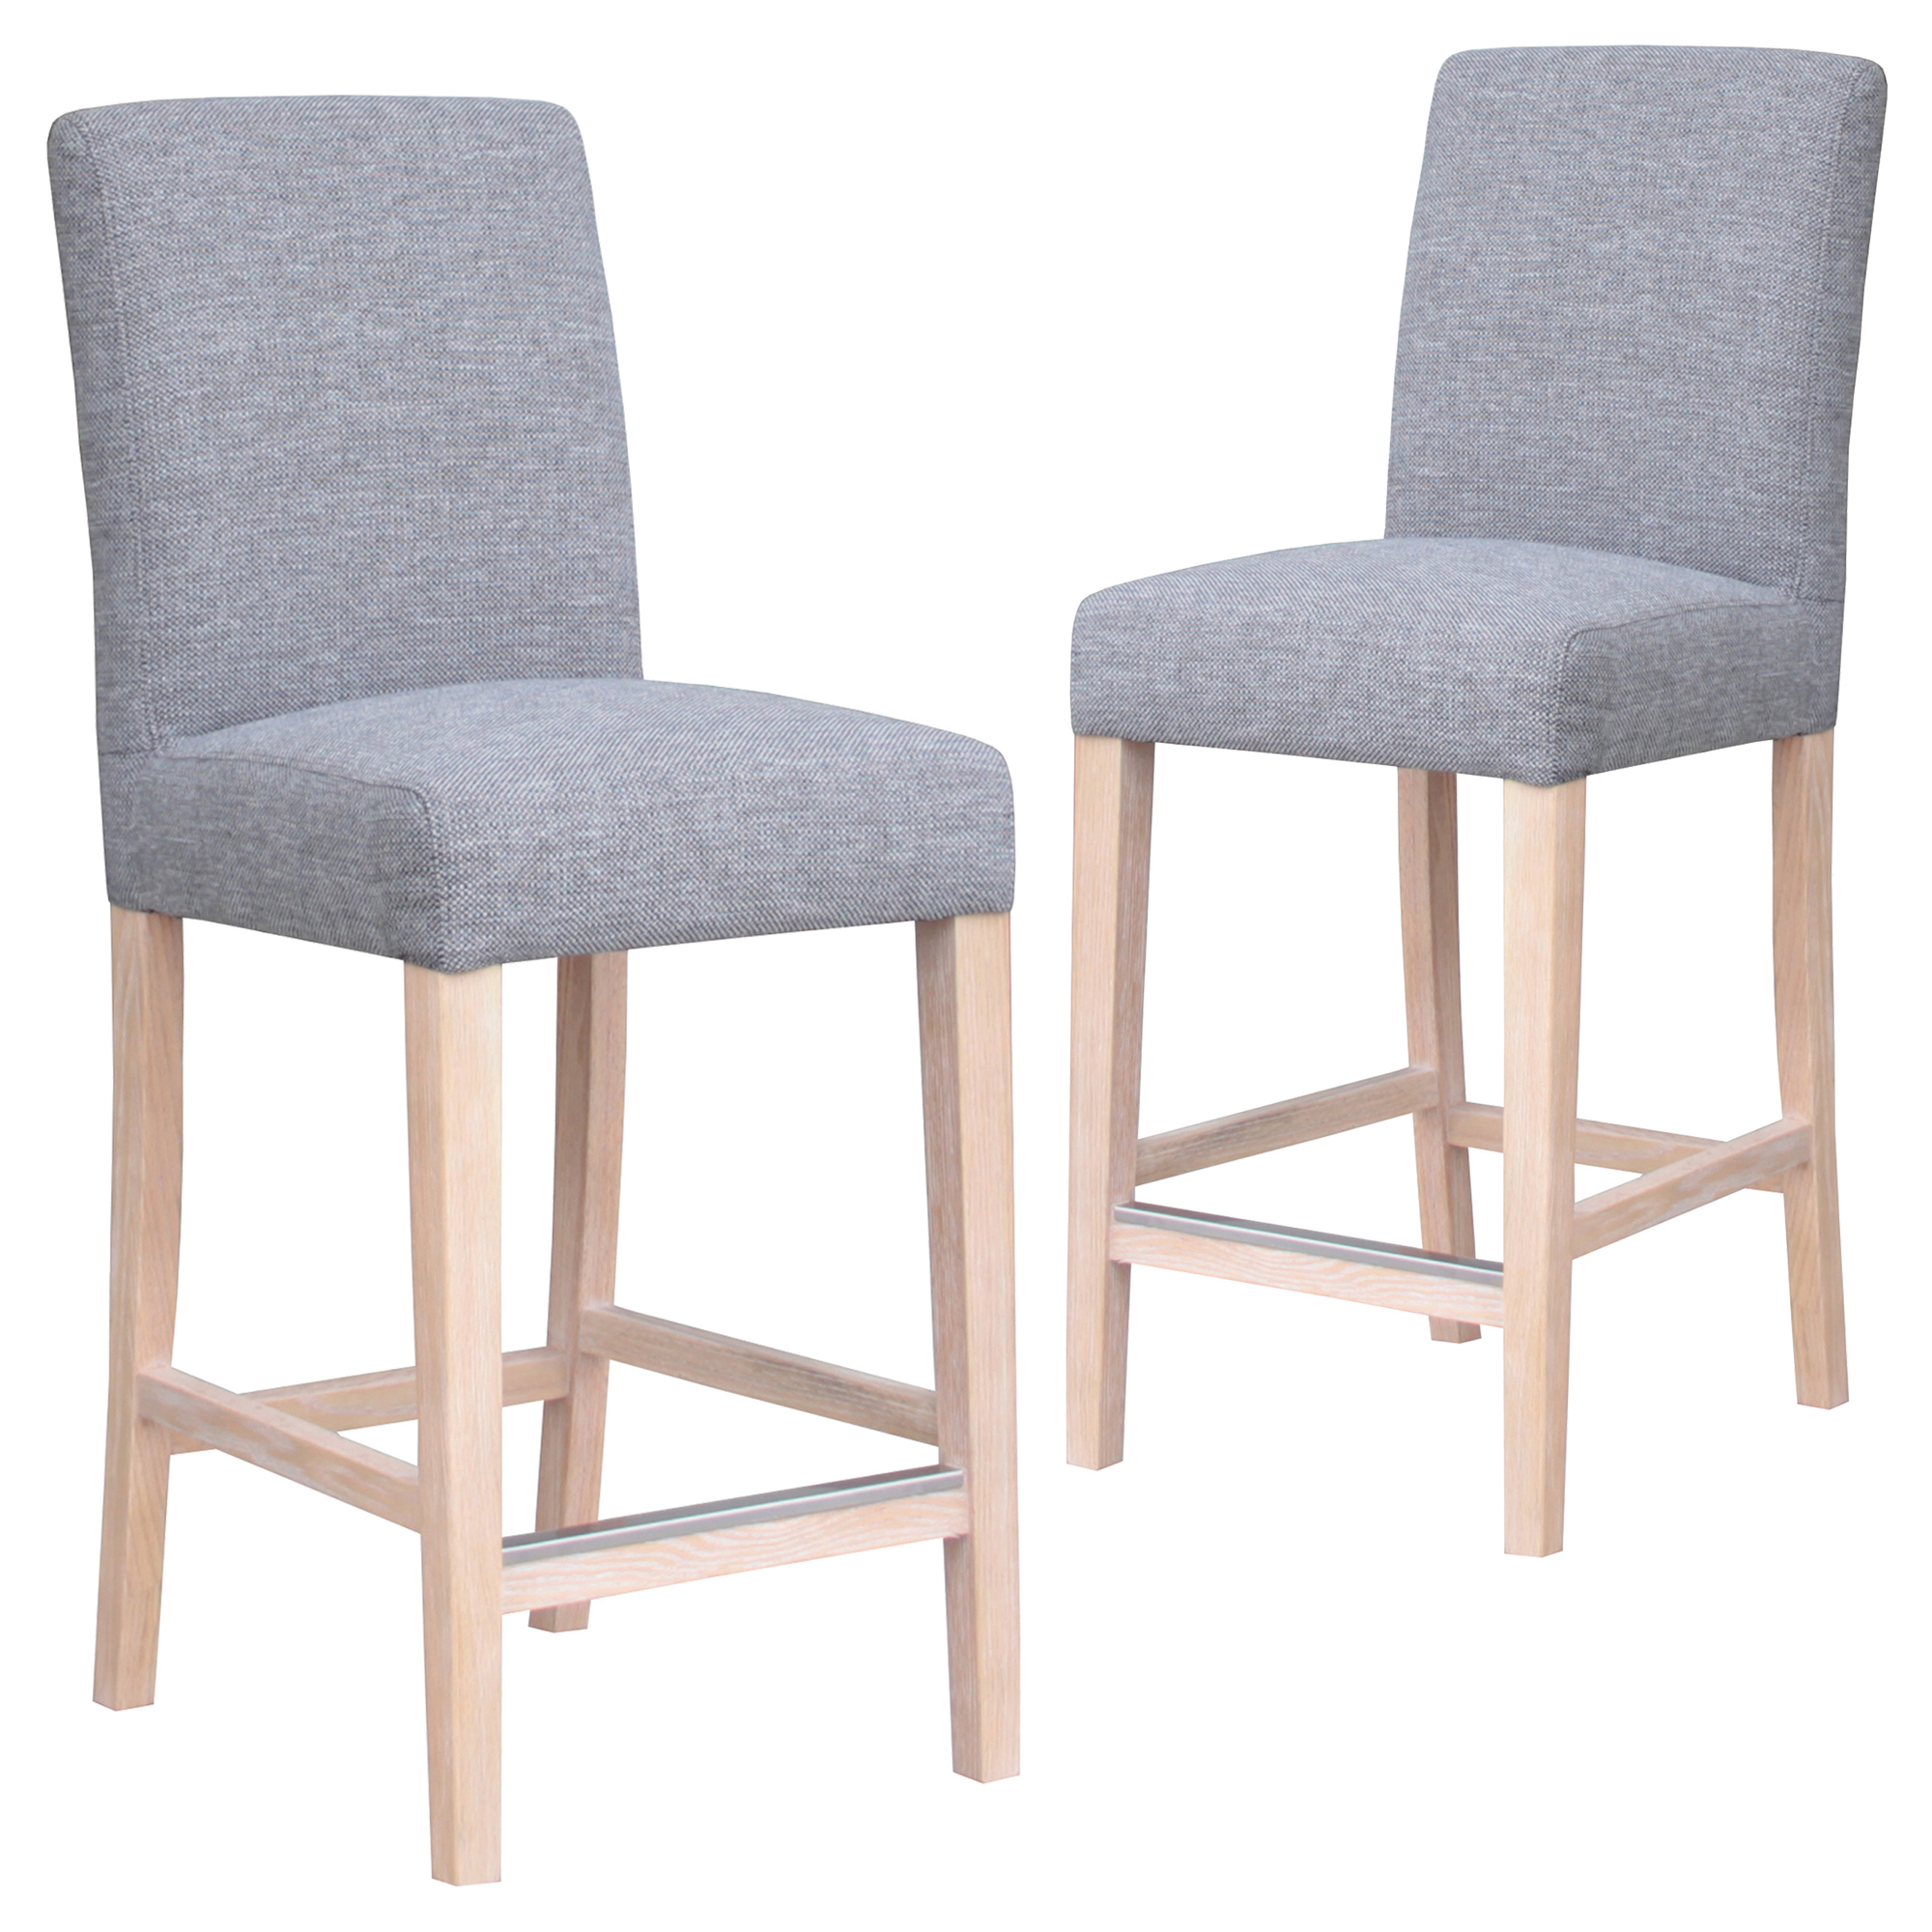 org fabric by stools signature design with arms upholstered bar docomuseum stool